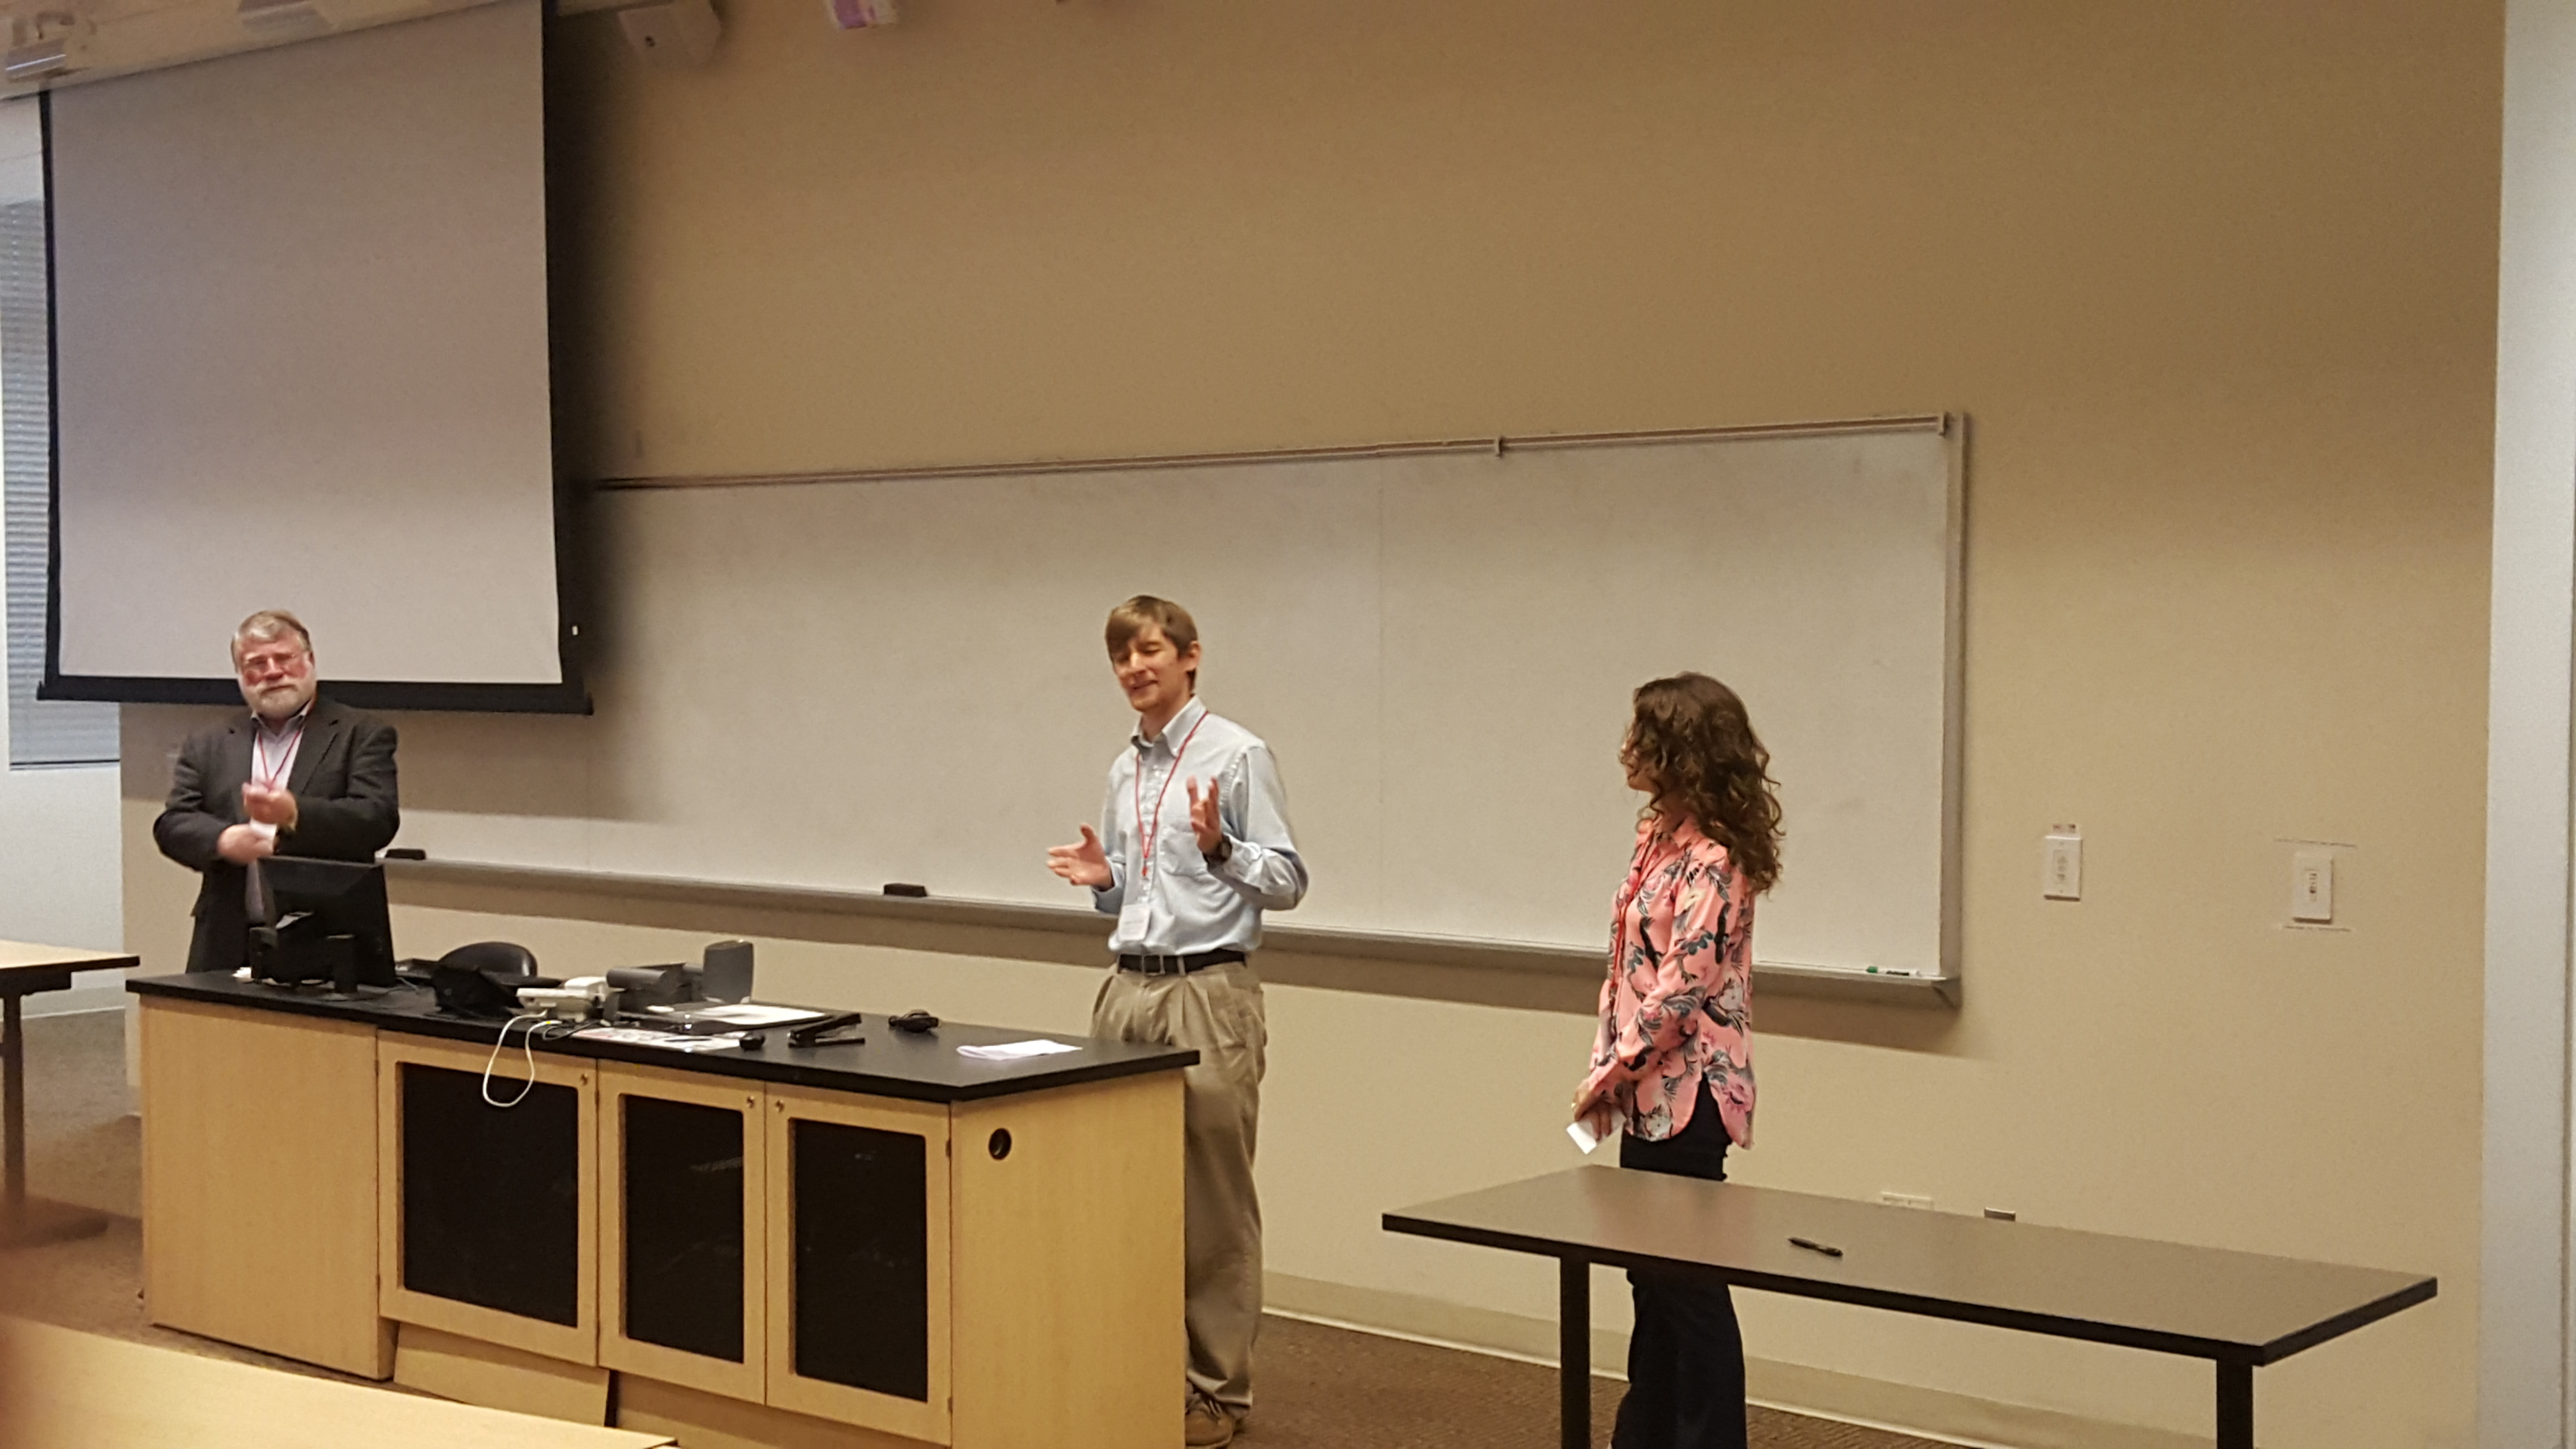 HGSA co-presidents Andrew Benton and Sarah Soleim welcome conference guests